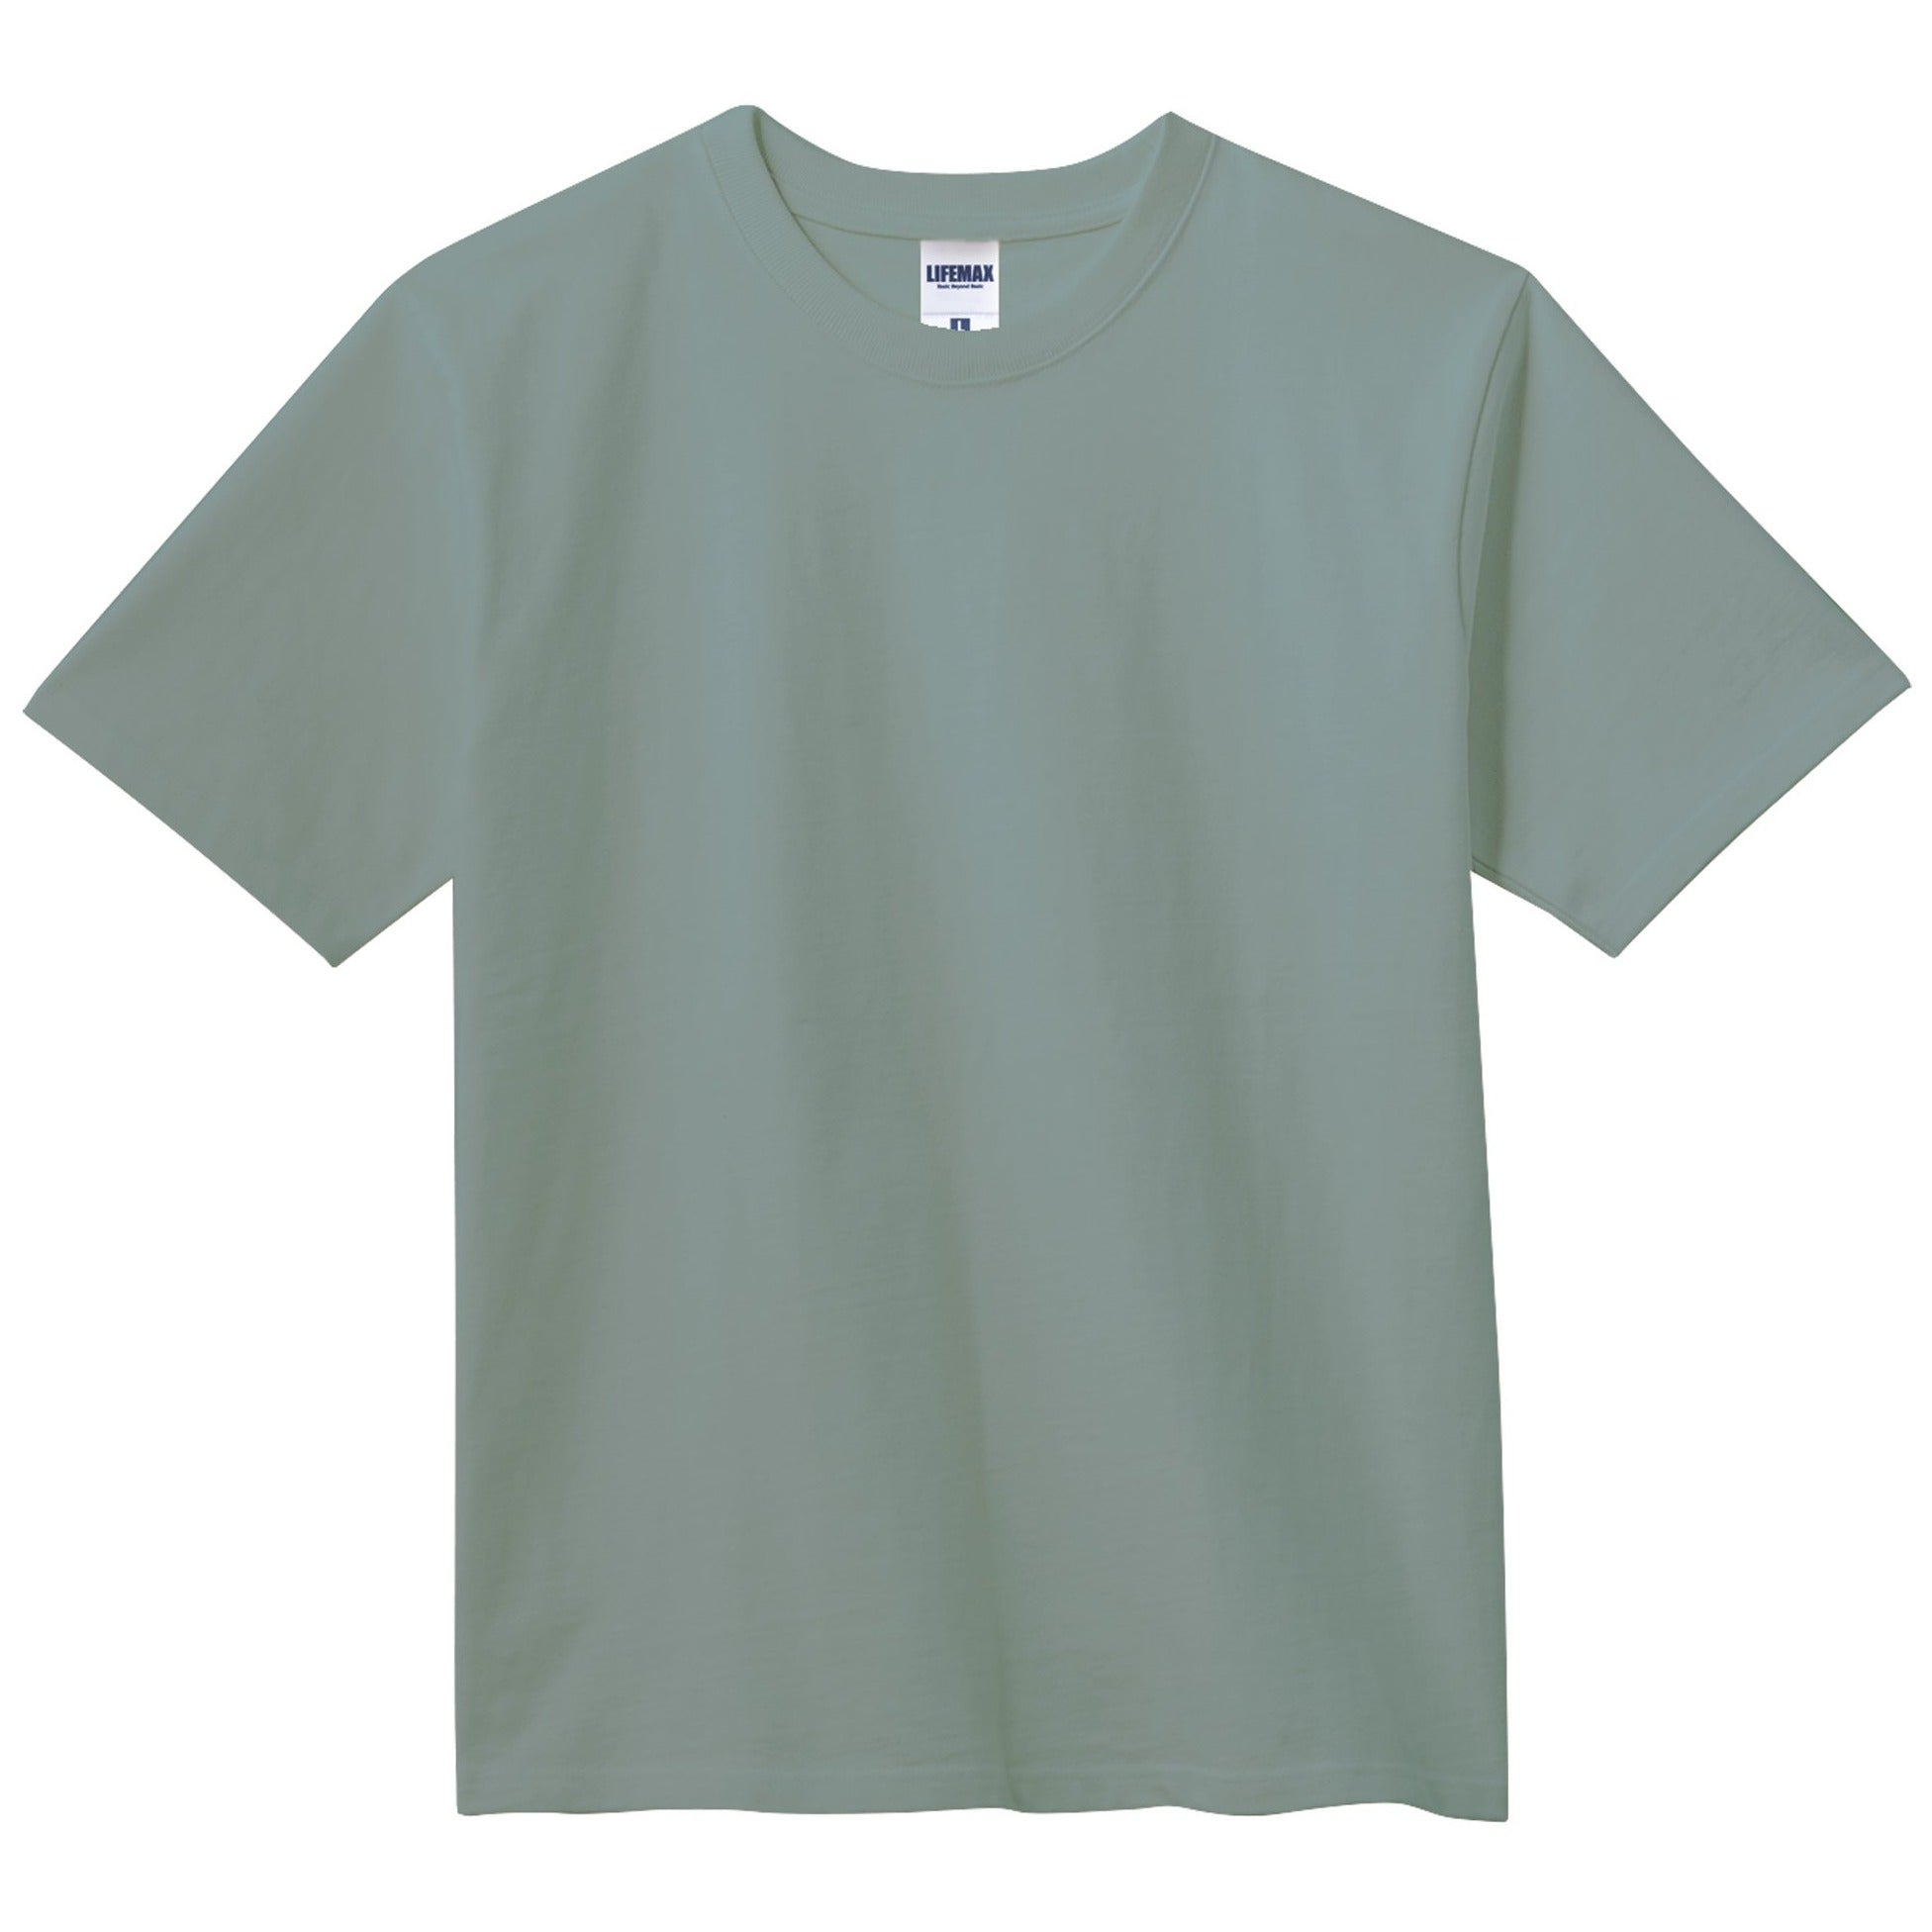 LIFEMAX MS1156 Heavy weight T-shirt